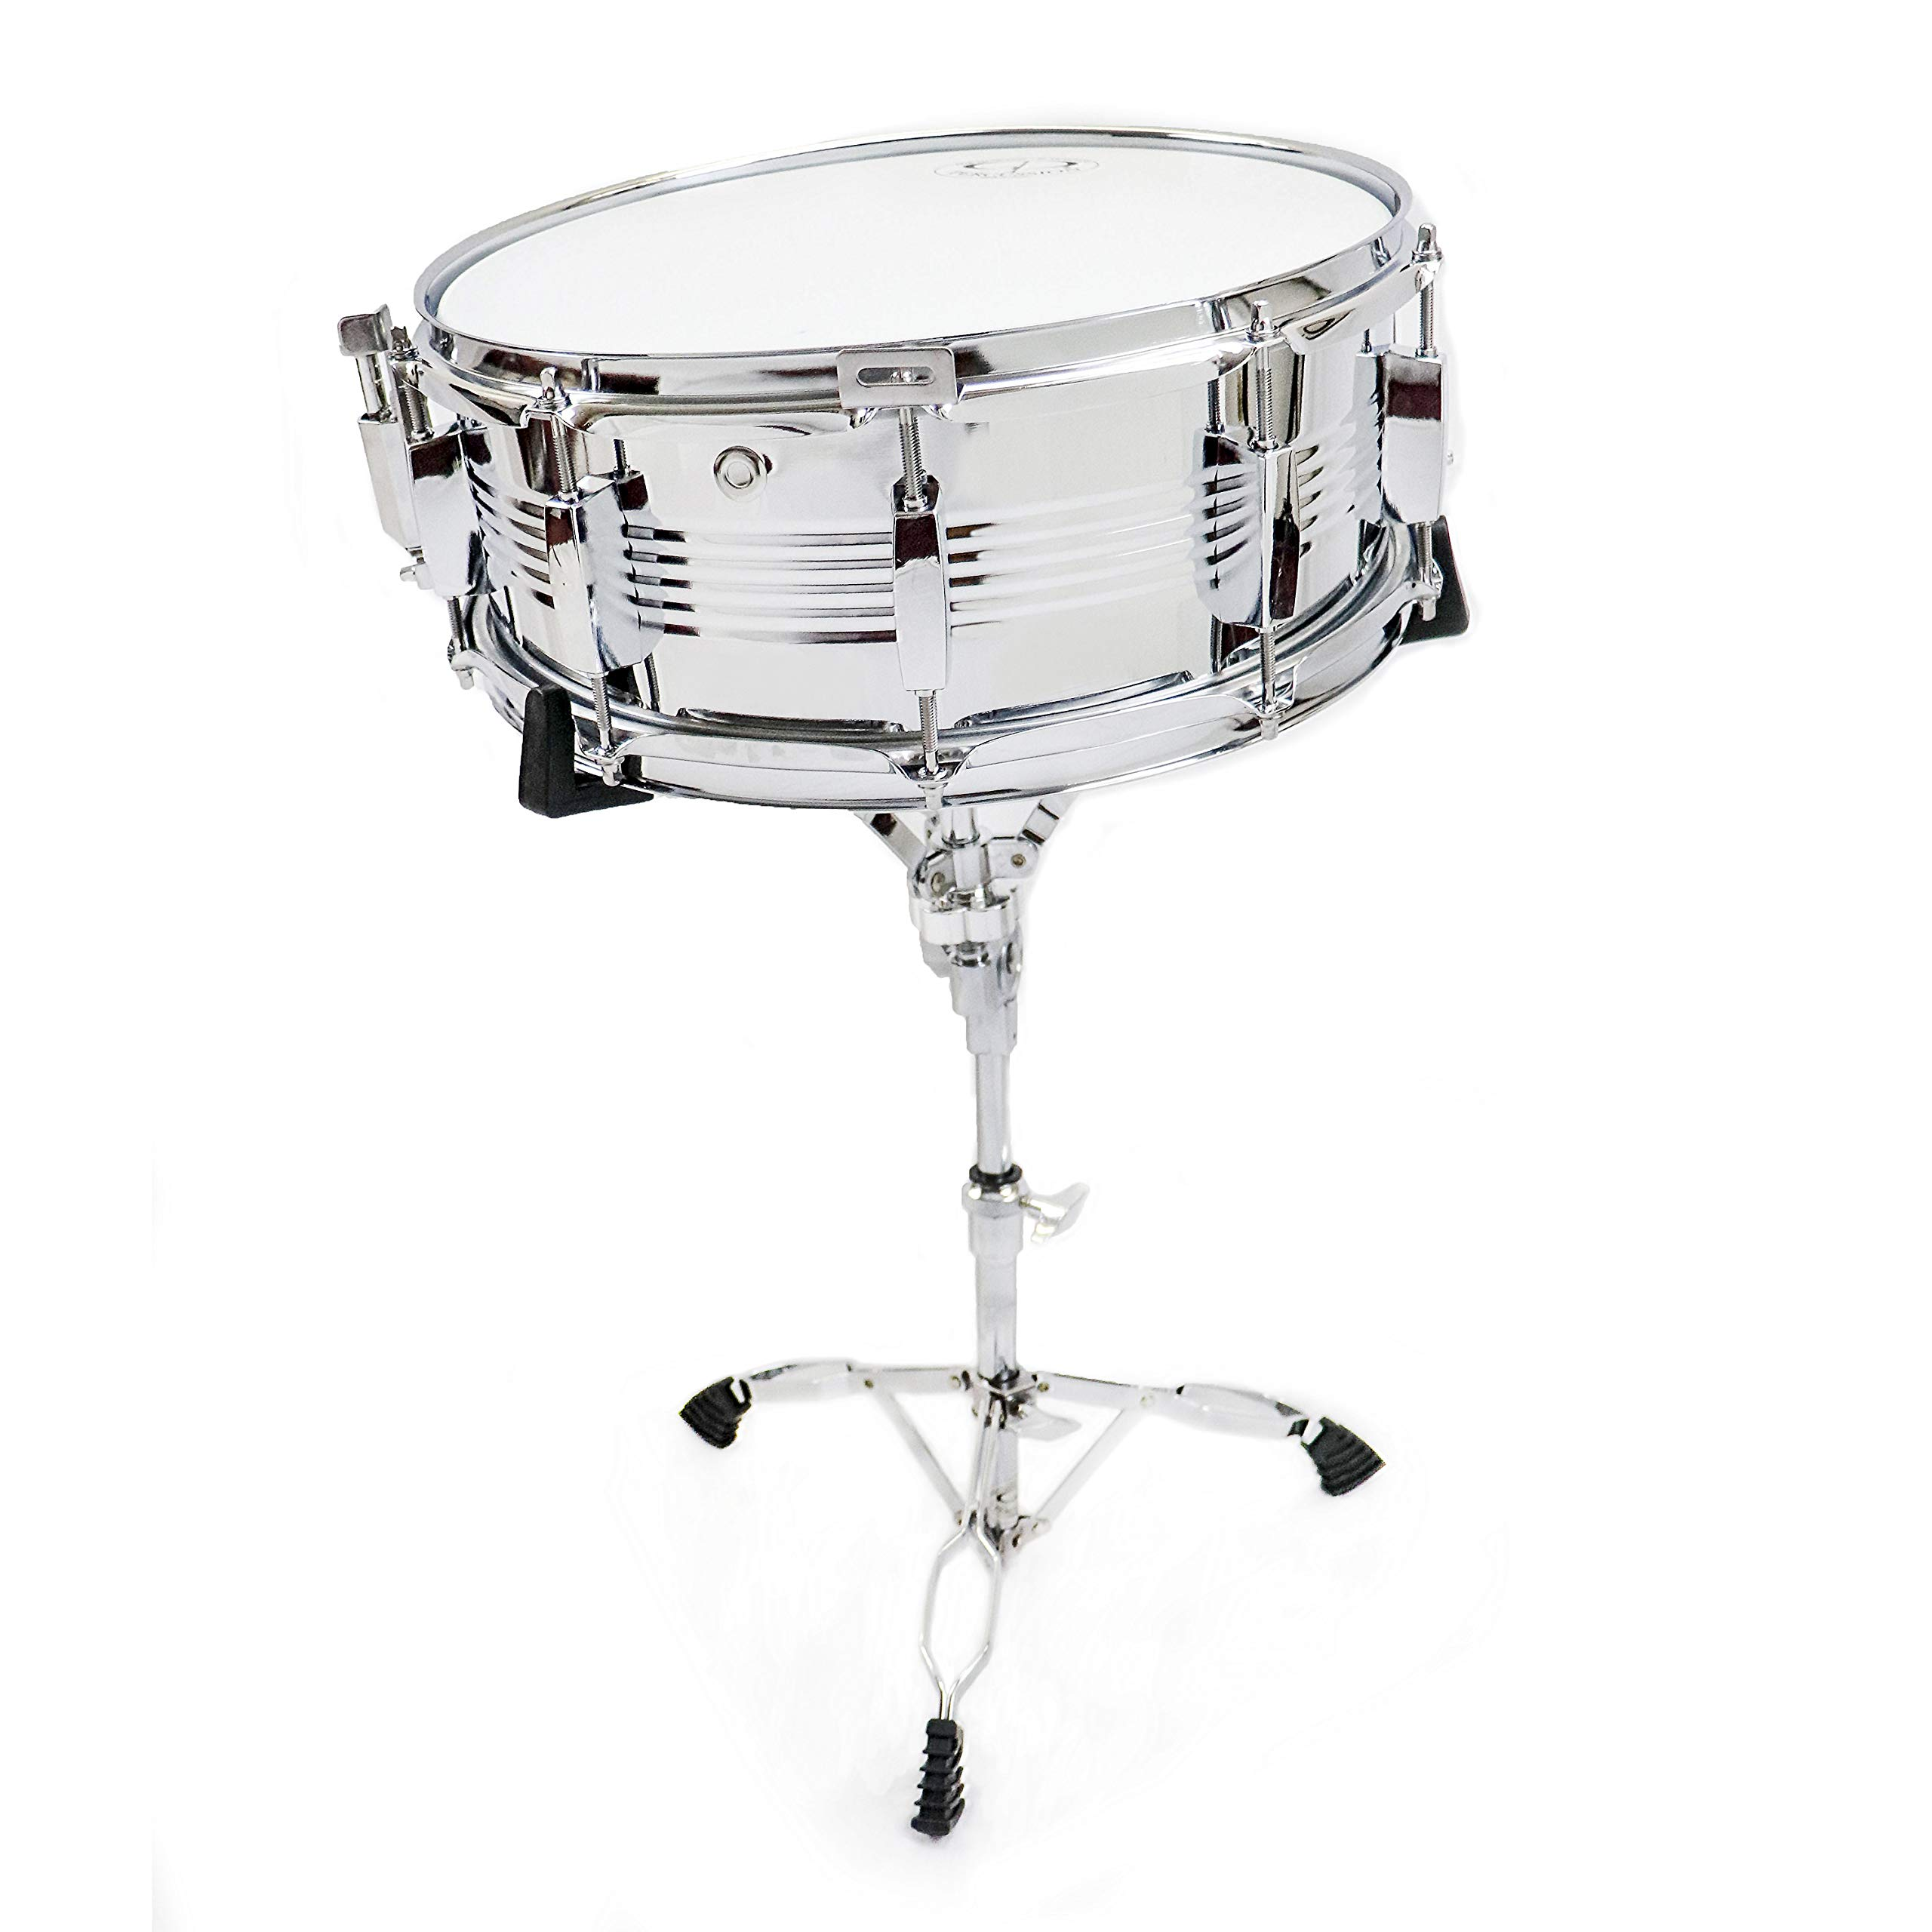 GP Percussion SK22 Complete Student Snare Drum Kit by GP Percussion